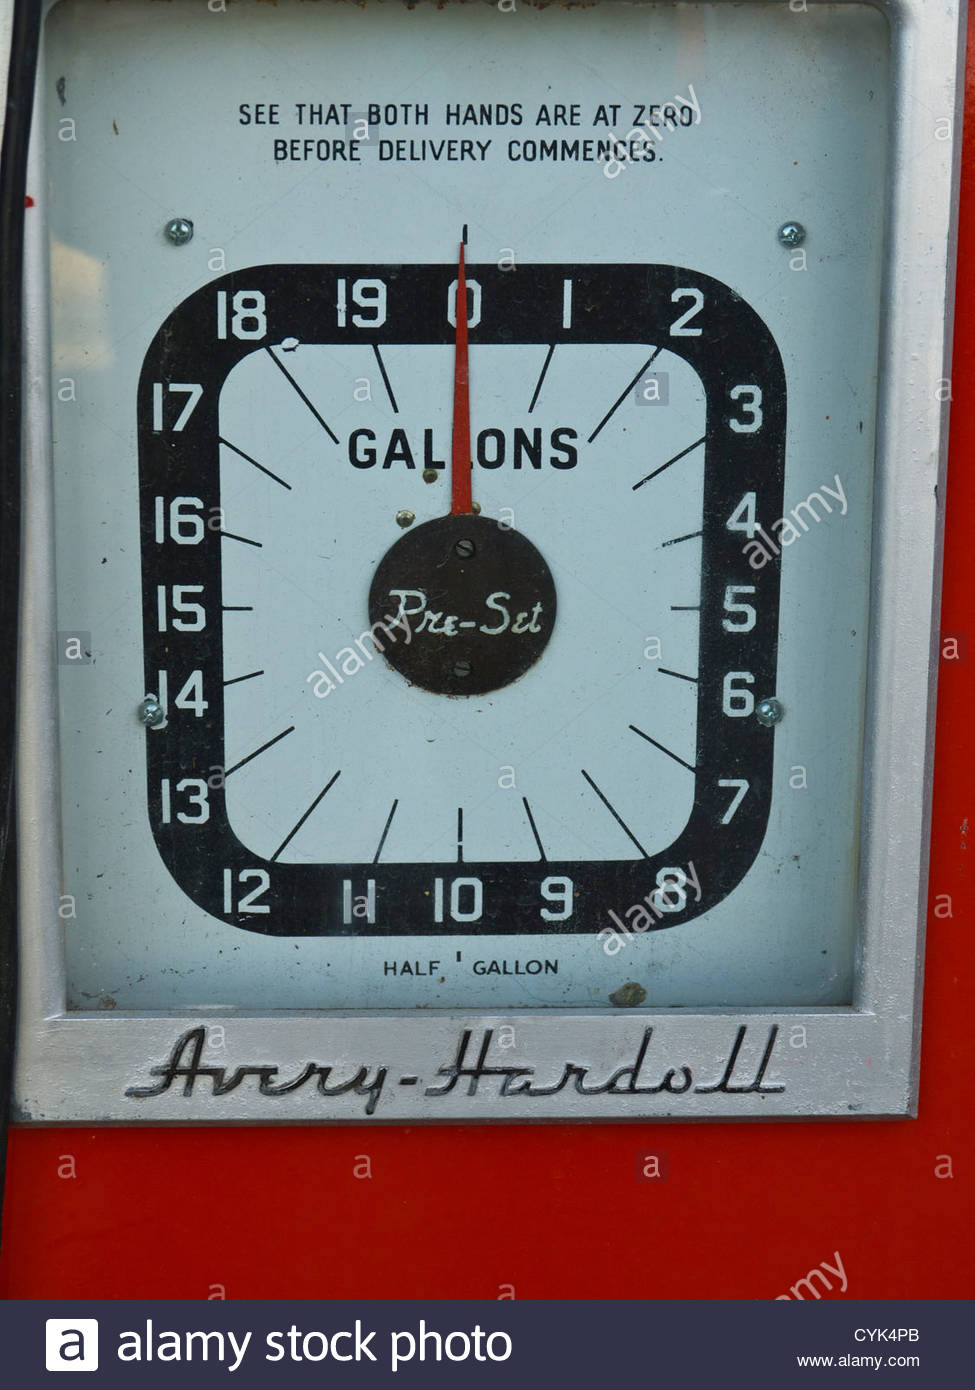 Old Avery Hardoll Petrol Pump analog Dial Face England - Stock Image